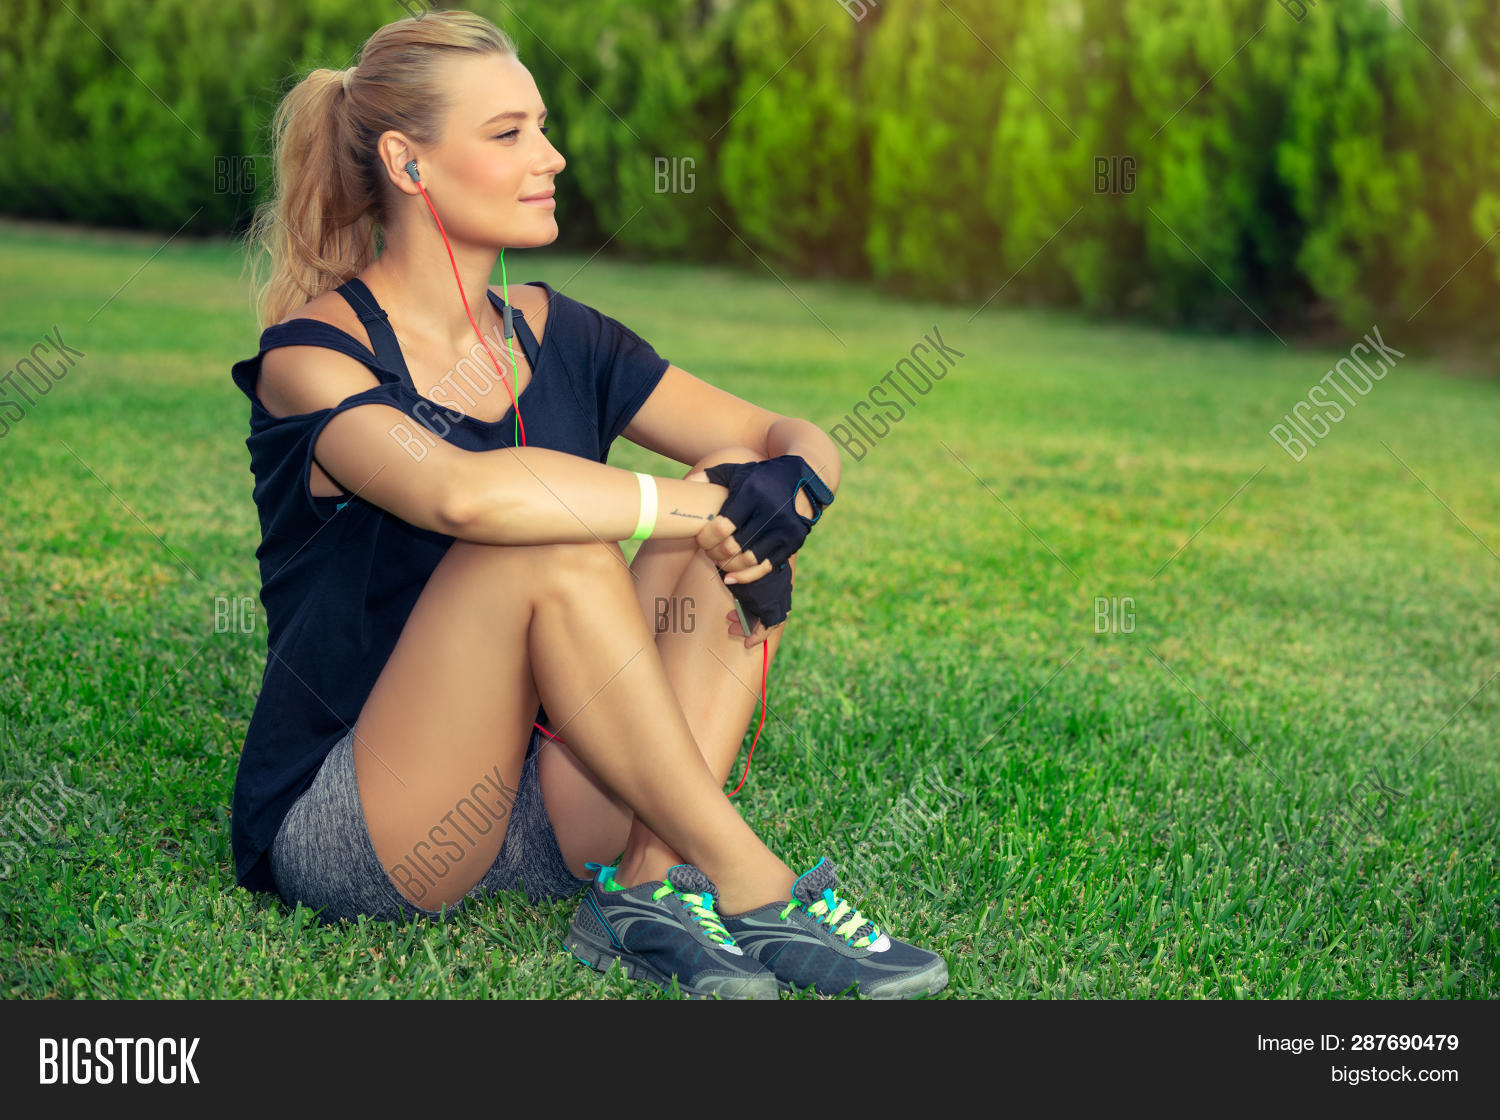 Female exercising outdoors, pretty blond woman relaxing after a good workout, listening music and me